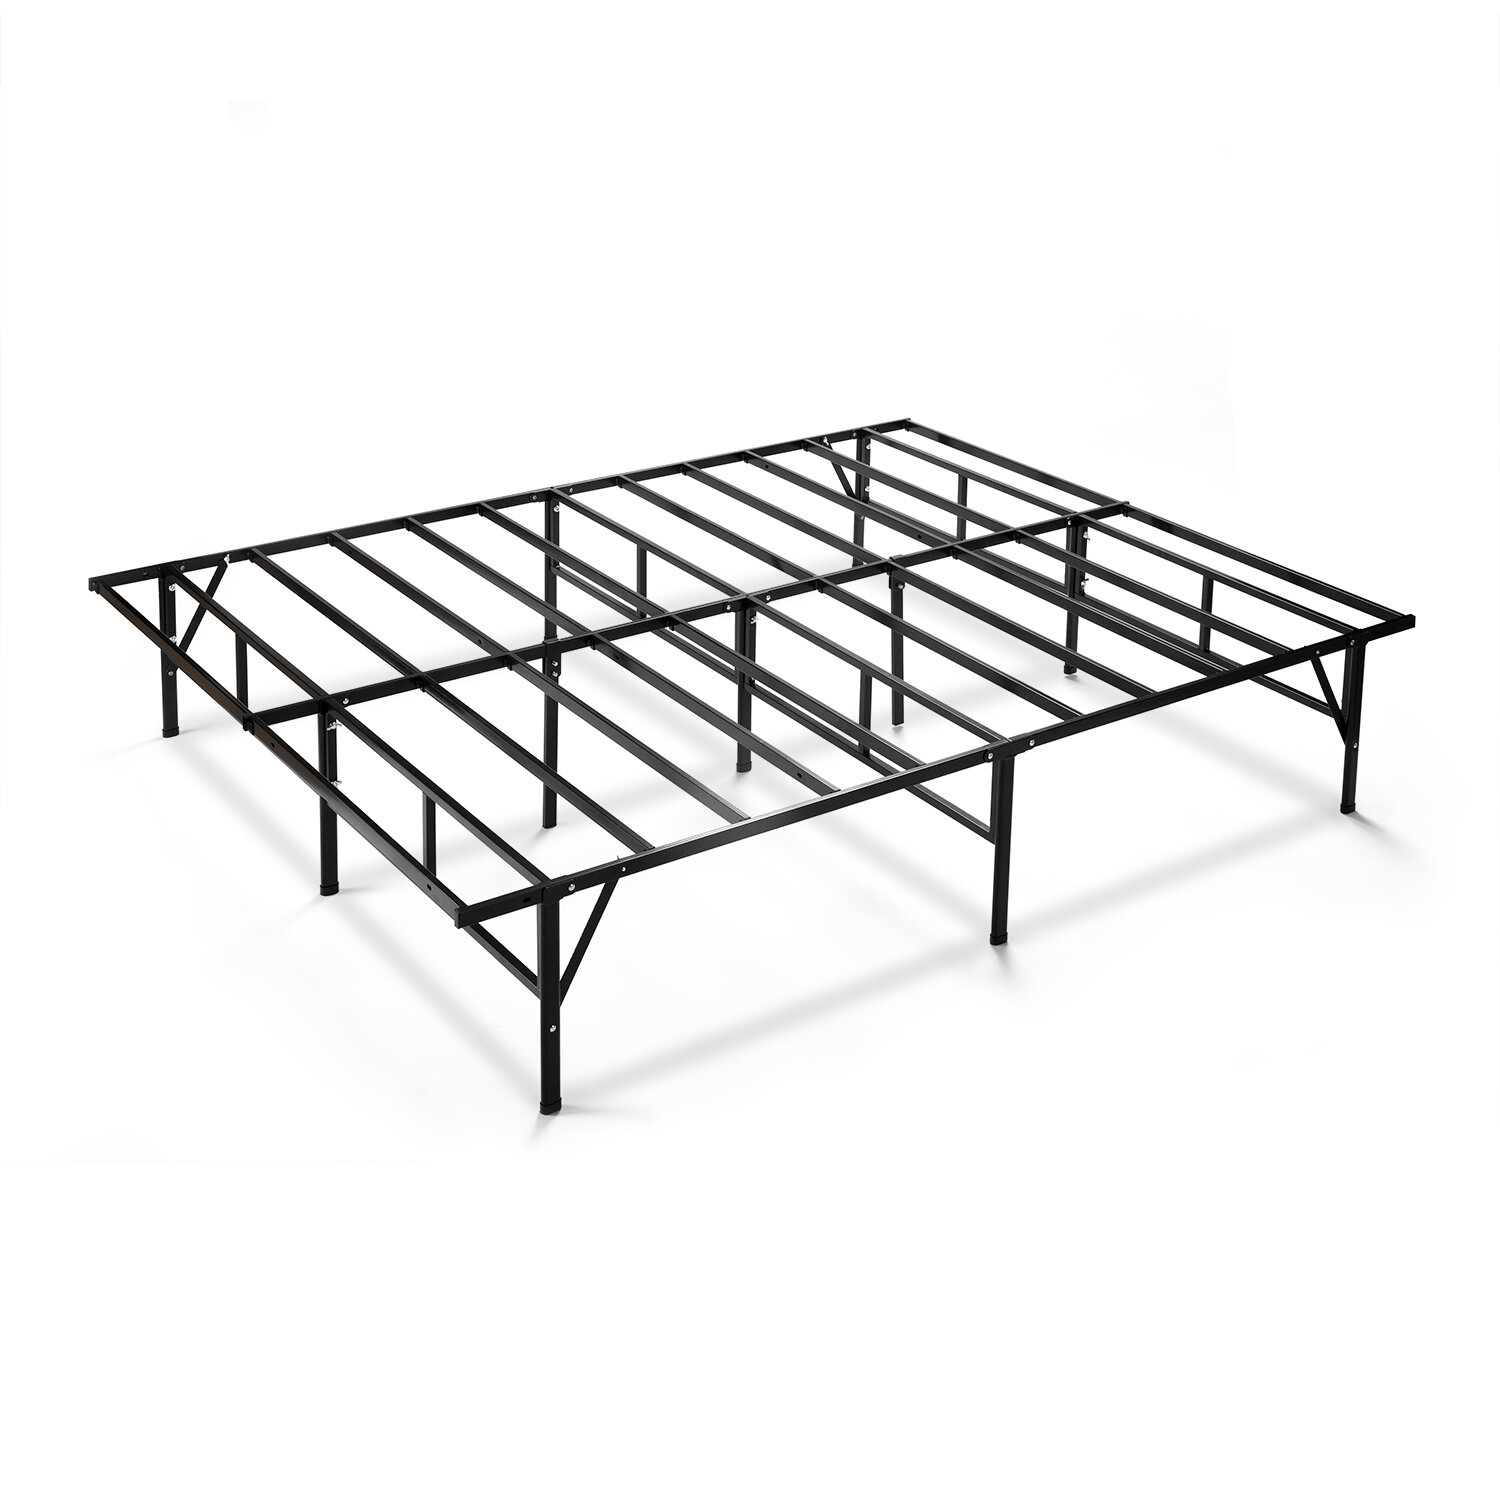 Alwyn Home Higbee Easy to Assemble Smartbase Bed Frame & Reviews ...